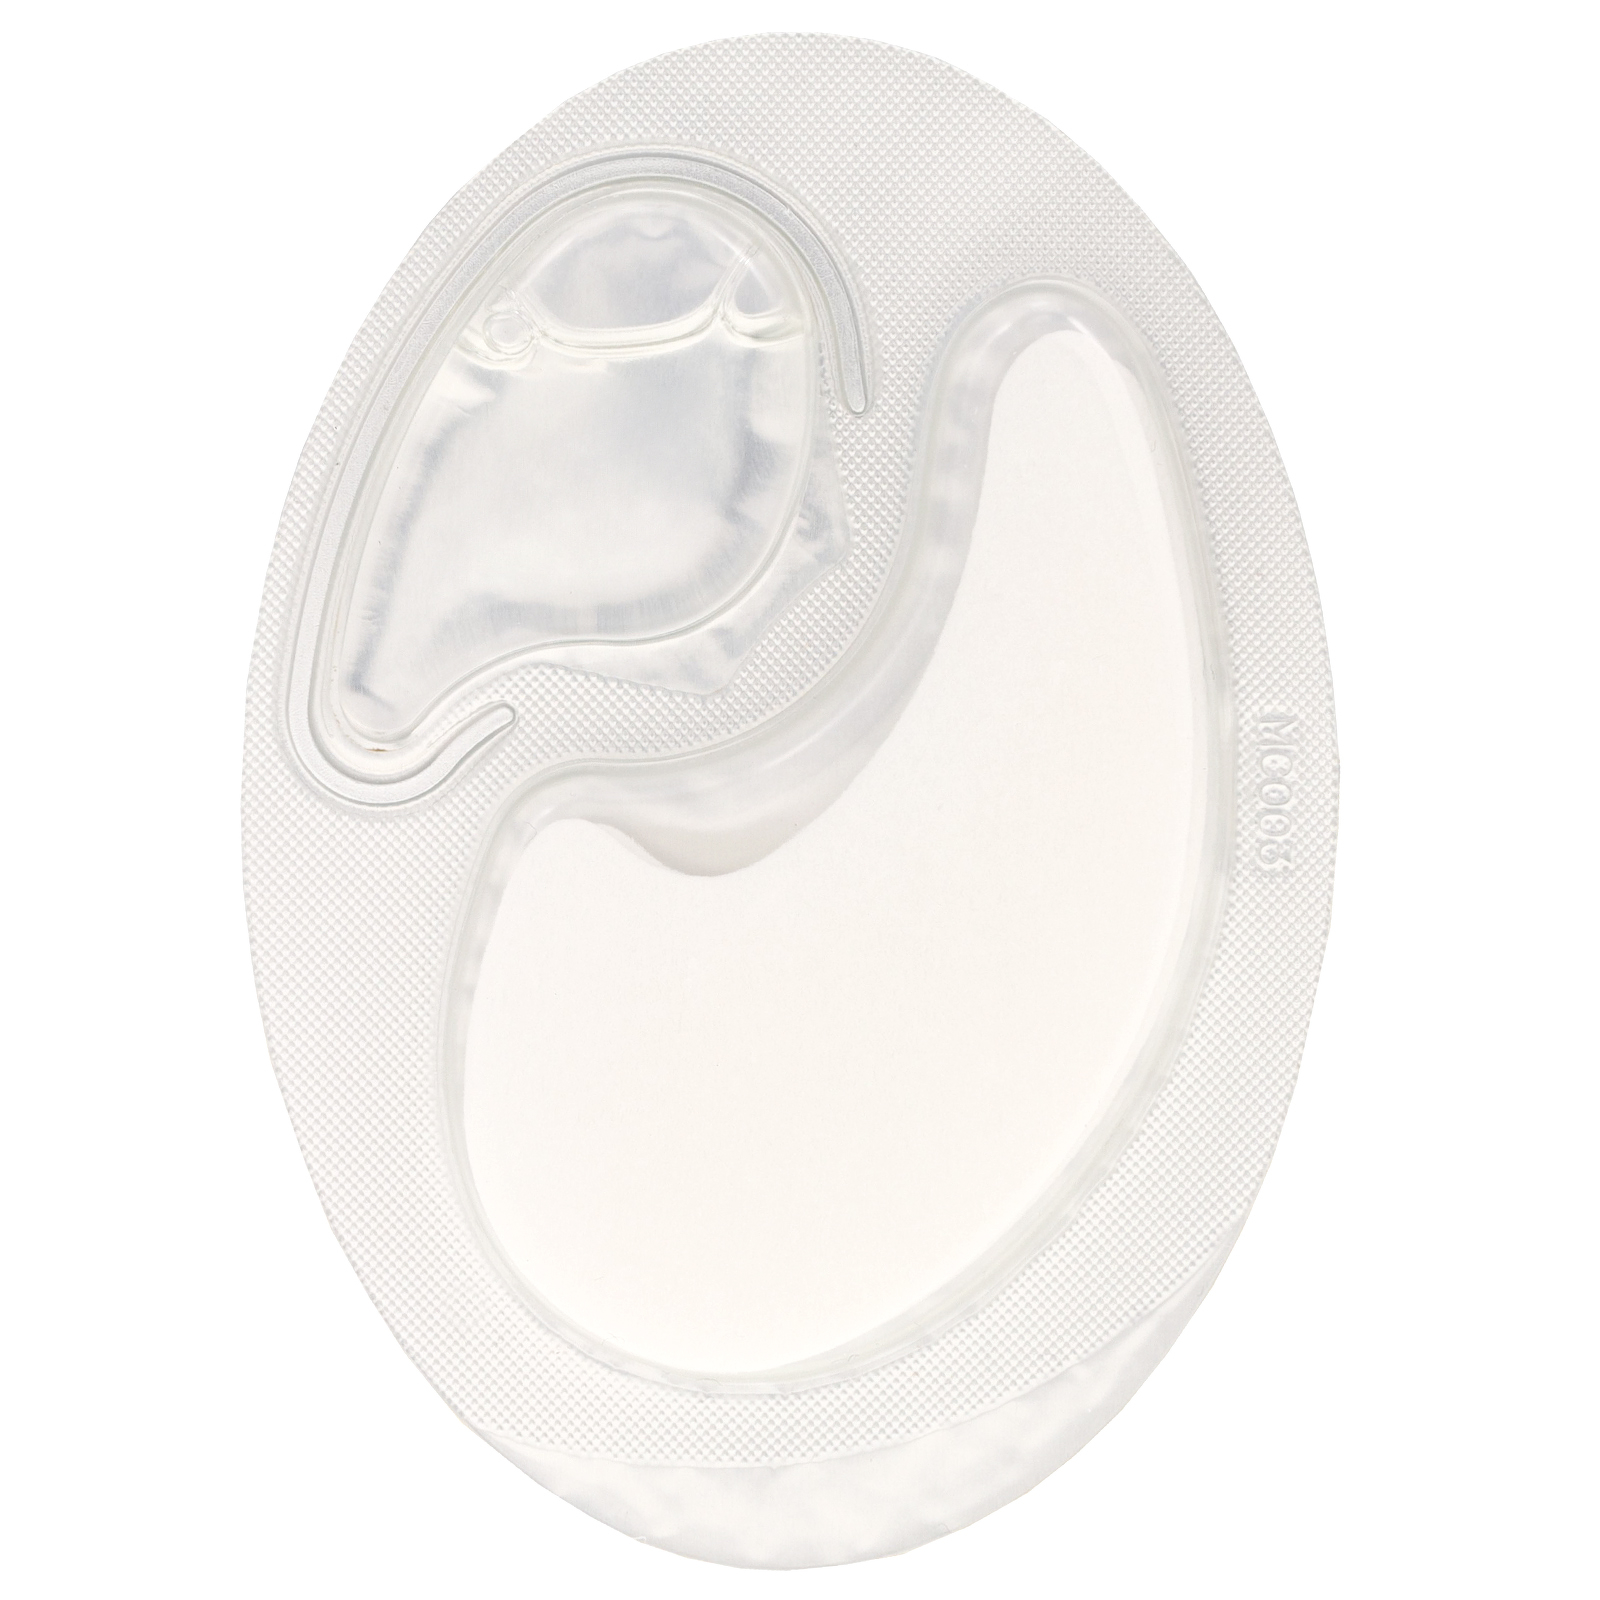 Valmont Intensive Care Eye Instant Stress Relieving Single Mask